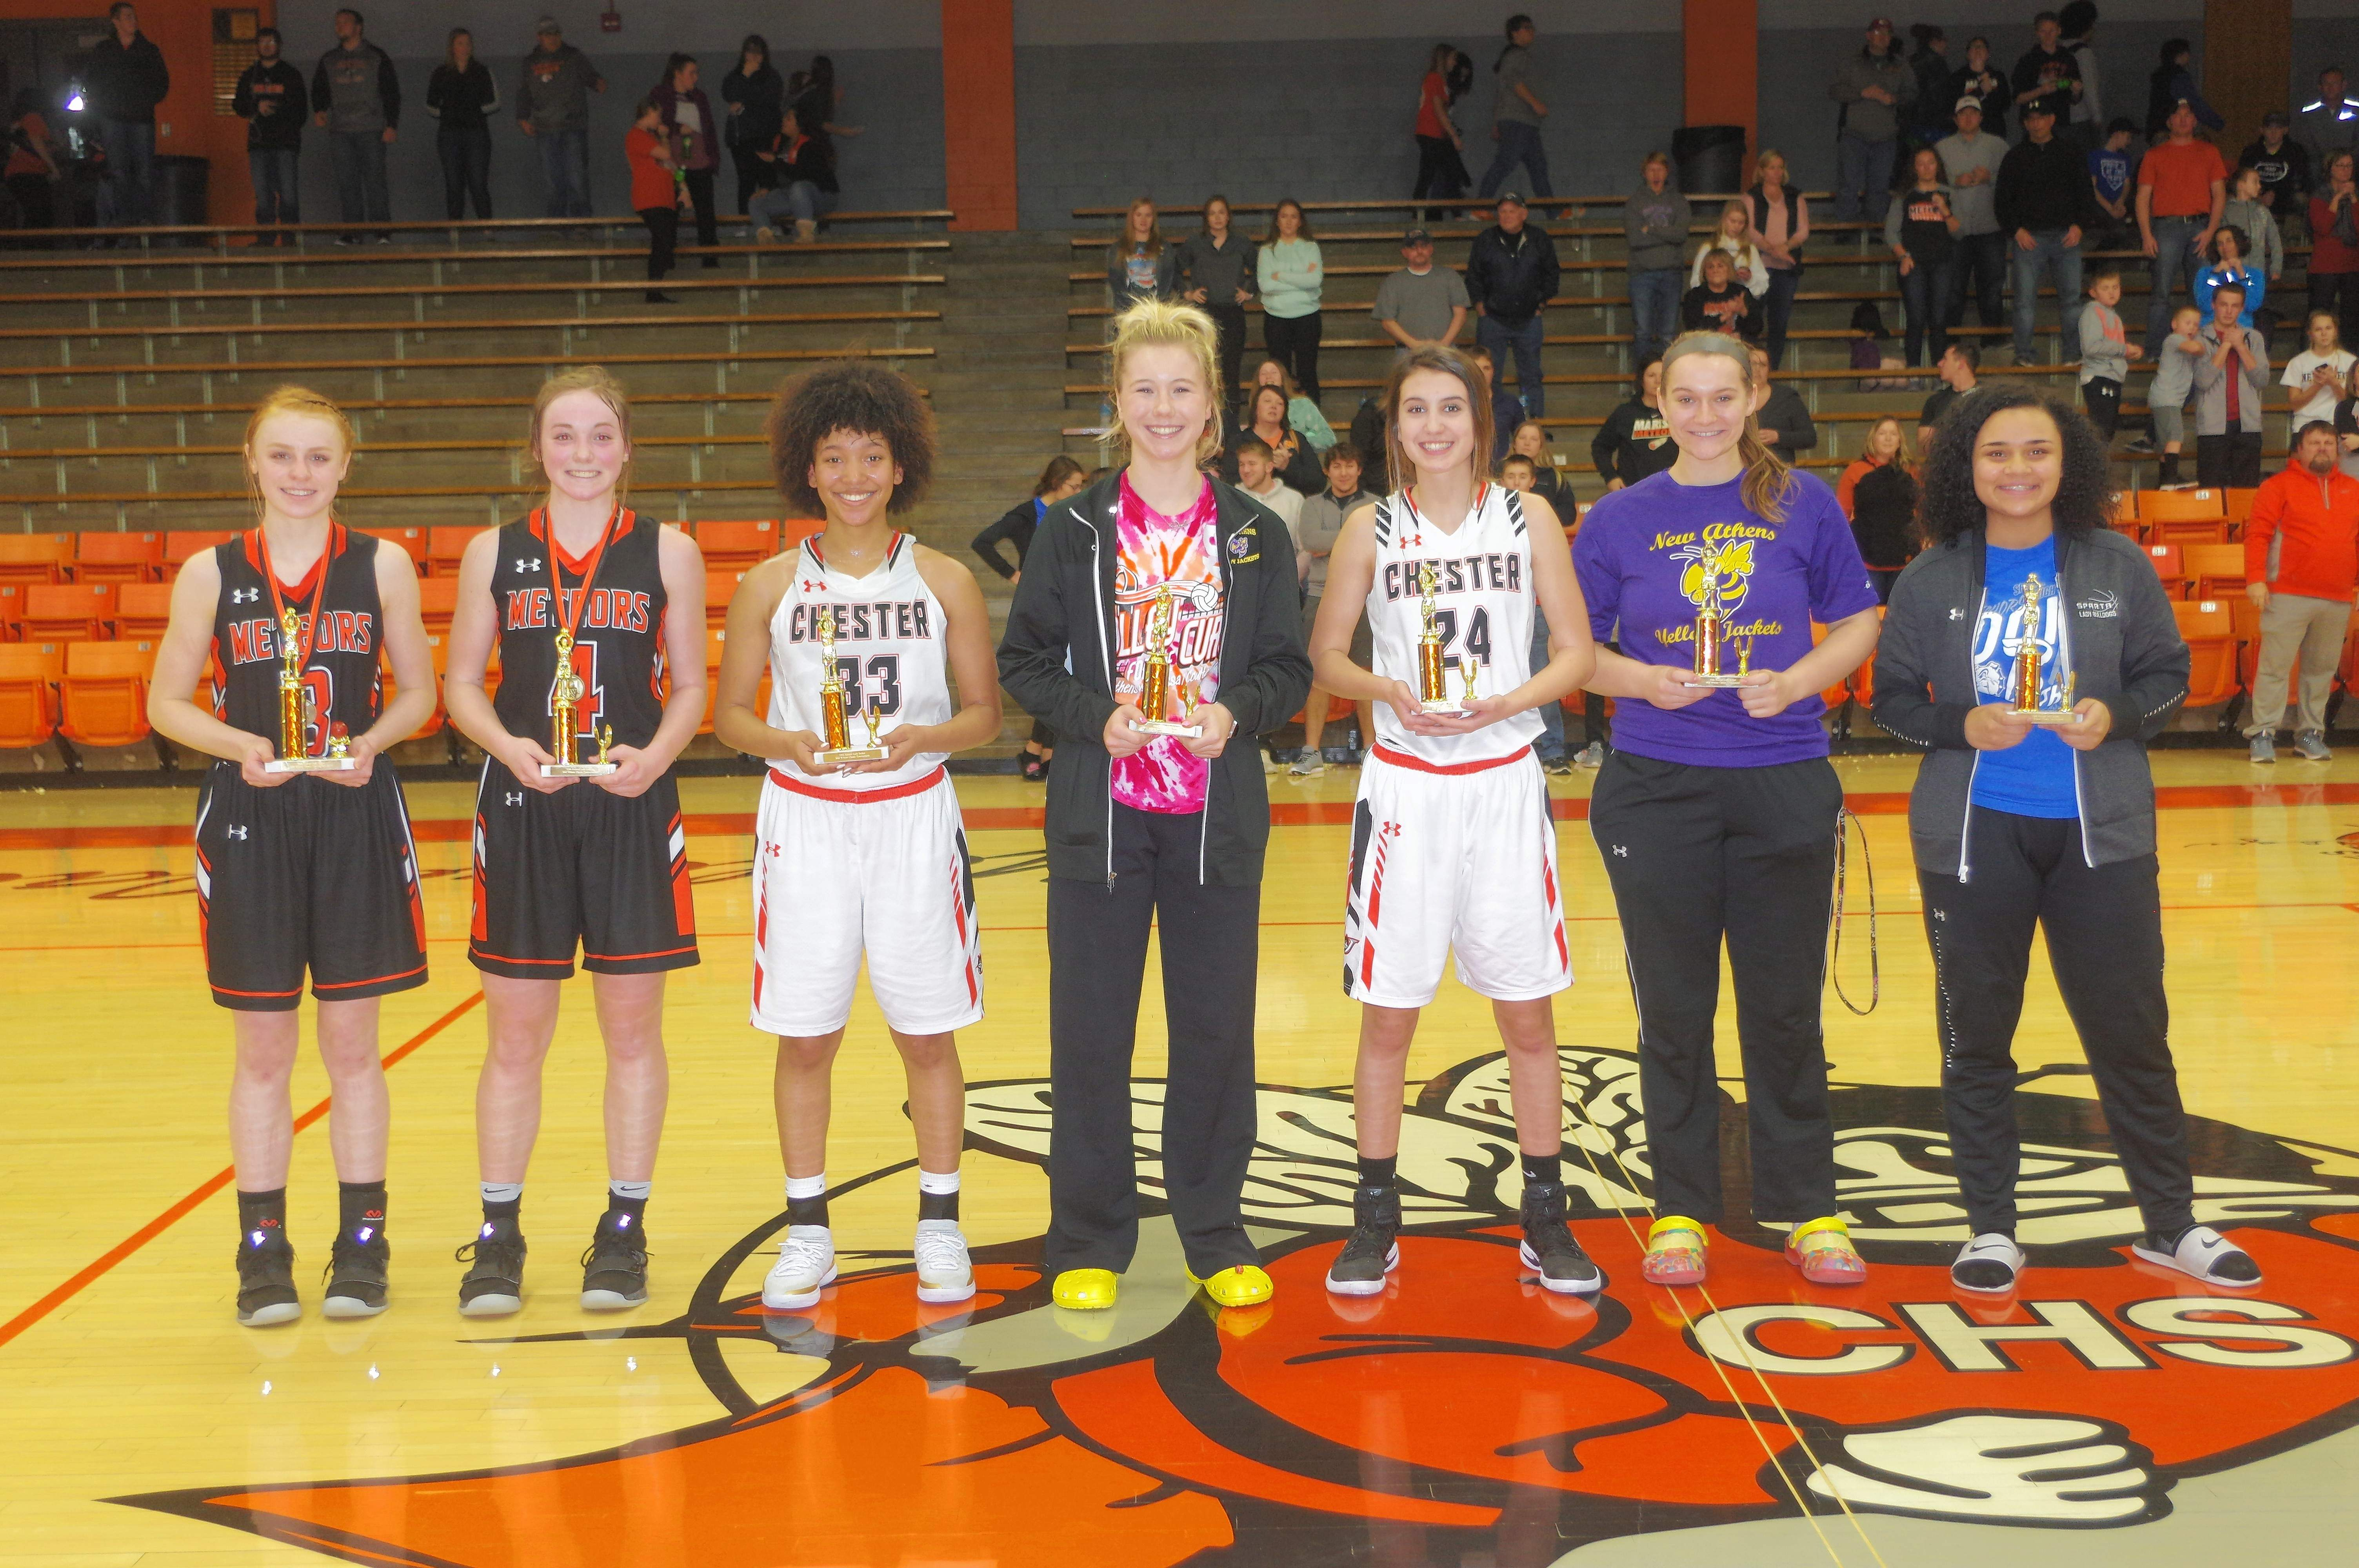 The 2019 Lady Jacket Mid-Winter Classic Basketball Tournament All-Tournament Team, from left: Most Valuable Player Emily Smith, sophomore from Marissa-Coulterville; Bree Portz, freshman from Marissa-Coulterville; Destiny Williams, junior Lady Jacket; Danika White, junior from New Athens; Reese Chandler, sophomore Lady Jacket; Julia Drake, junior from New Athens; and Amyia Henry, senior from Sparta.Not present for the ceremony: Allie Whittington, senior from Elverado; Jenna Cottom, sophomore from Trico; and Tinleigh Jakimauskas, sophomore from New Athens.